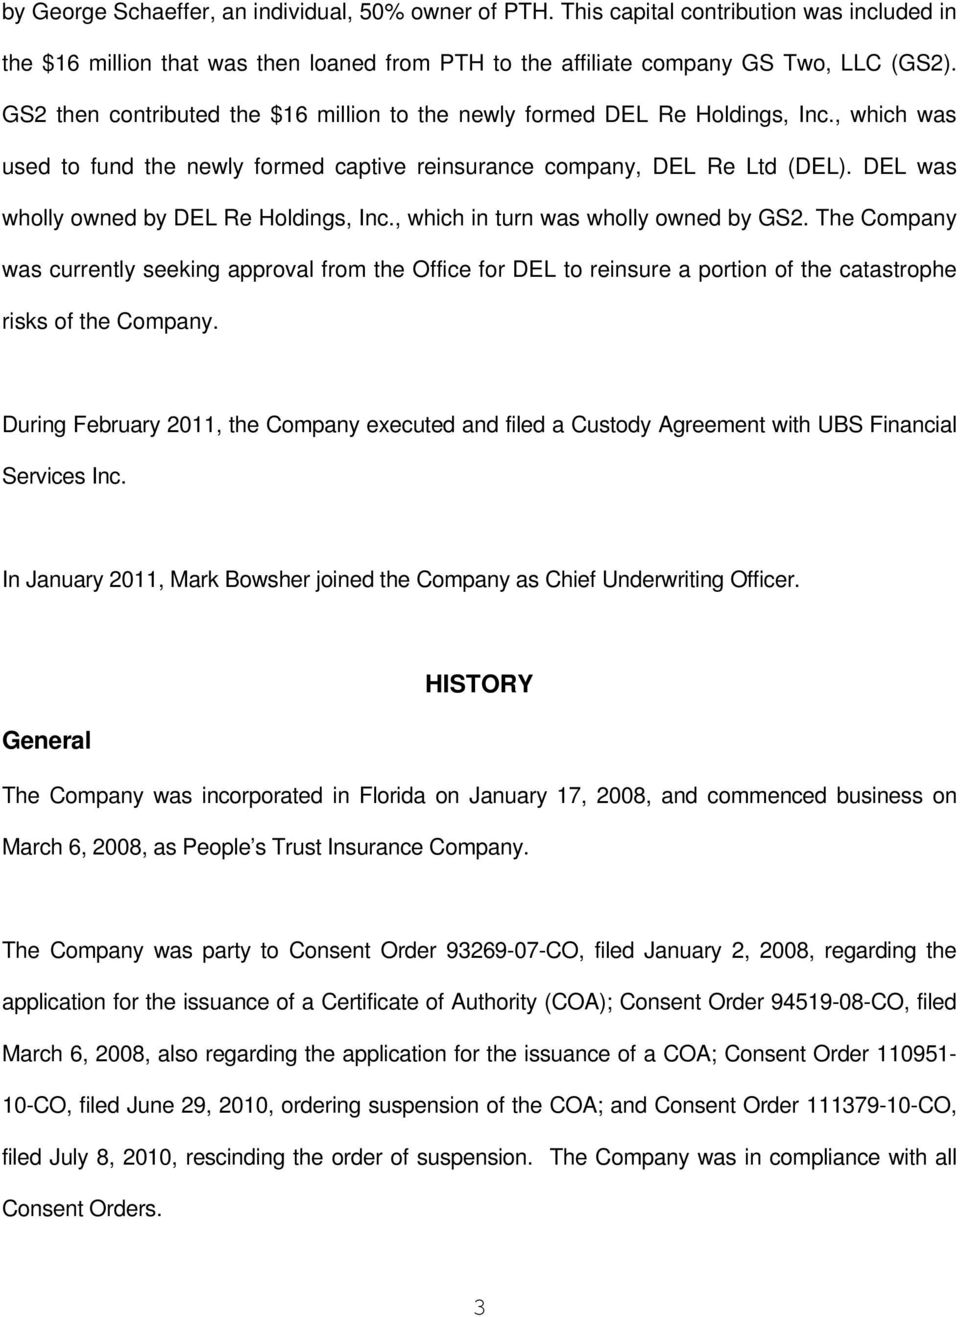 DEL was wholly owned by DEL Re Holdings, Inc., which in turn was wholly owned by GS2.